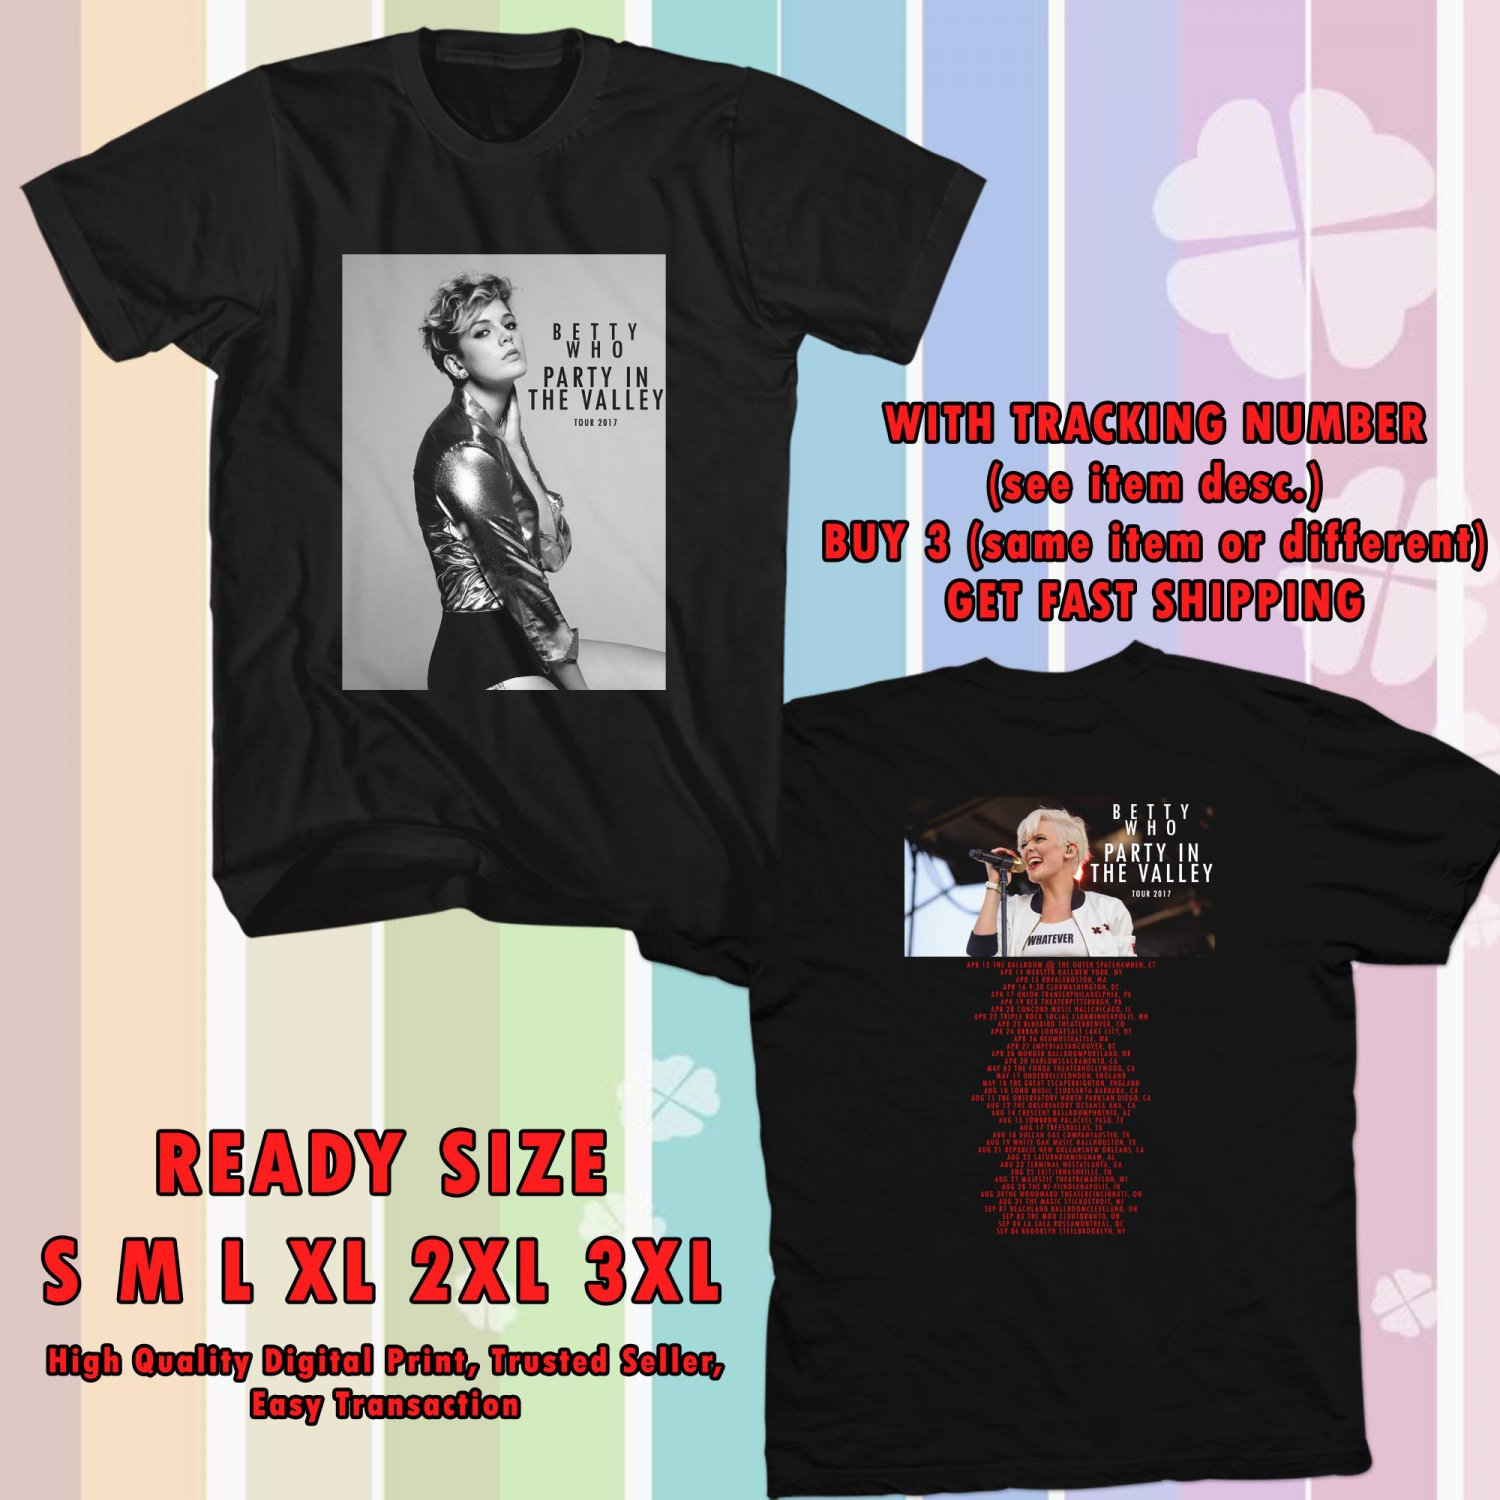 NEW BETTY WHO PARTY IN THE VALLEY TOUR 2017 BLACK TEE W DATES DMTR